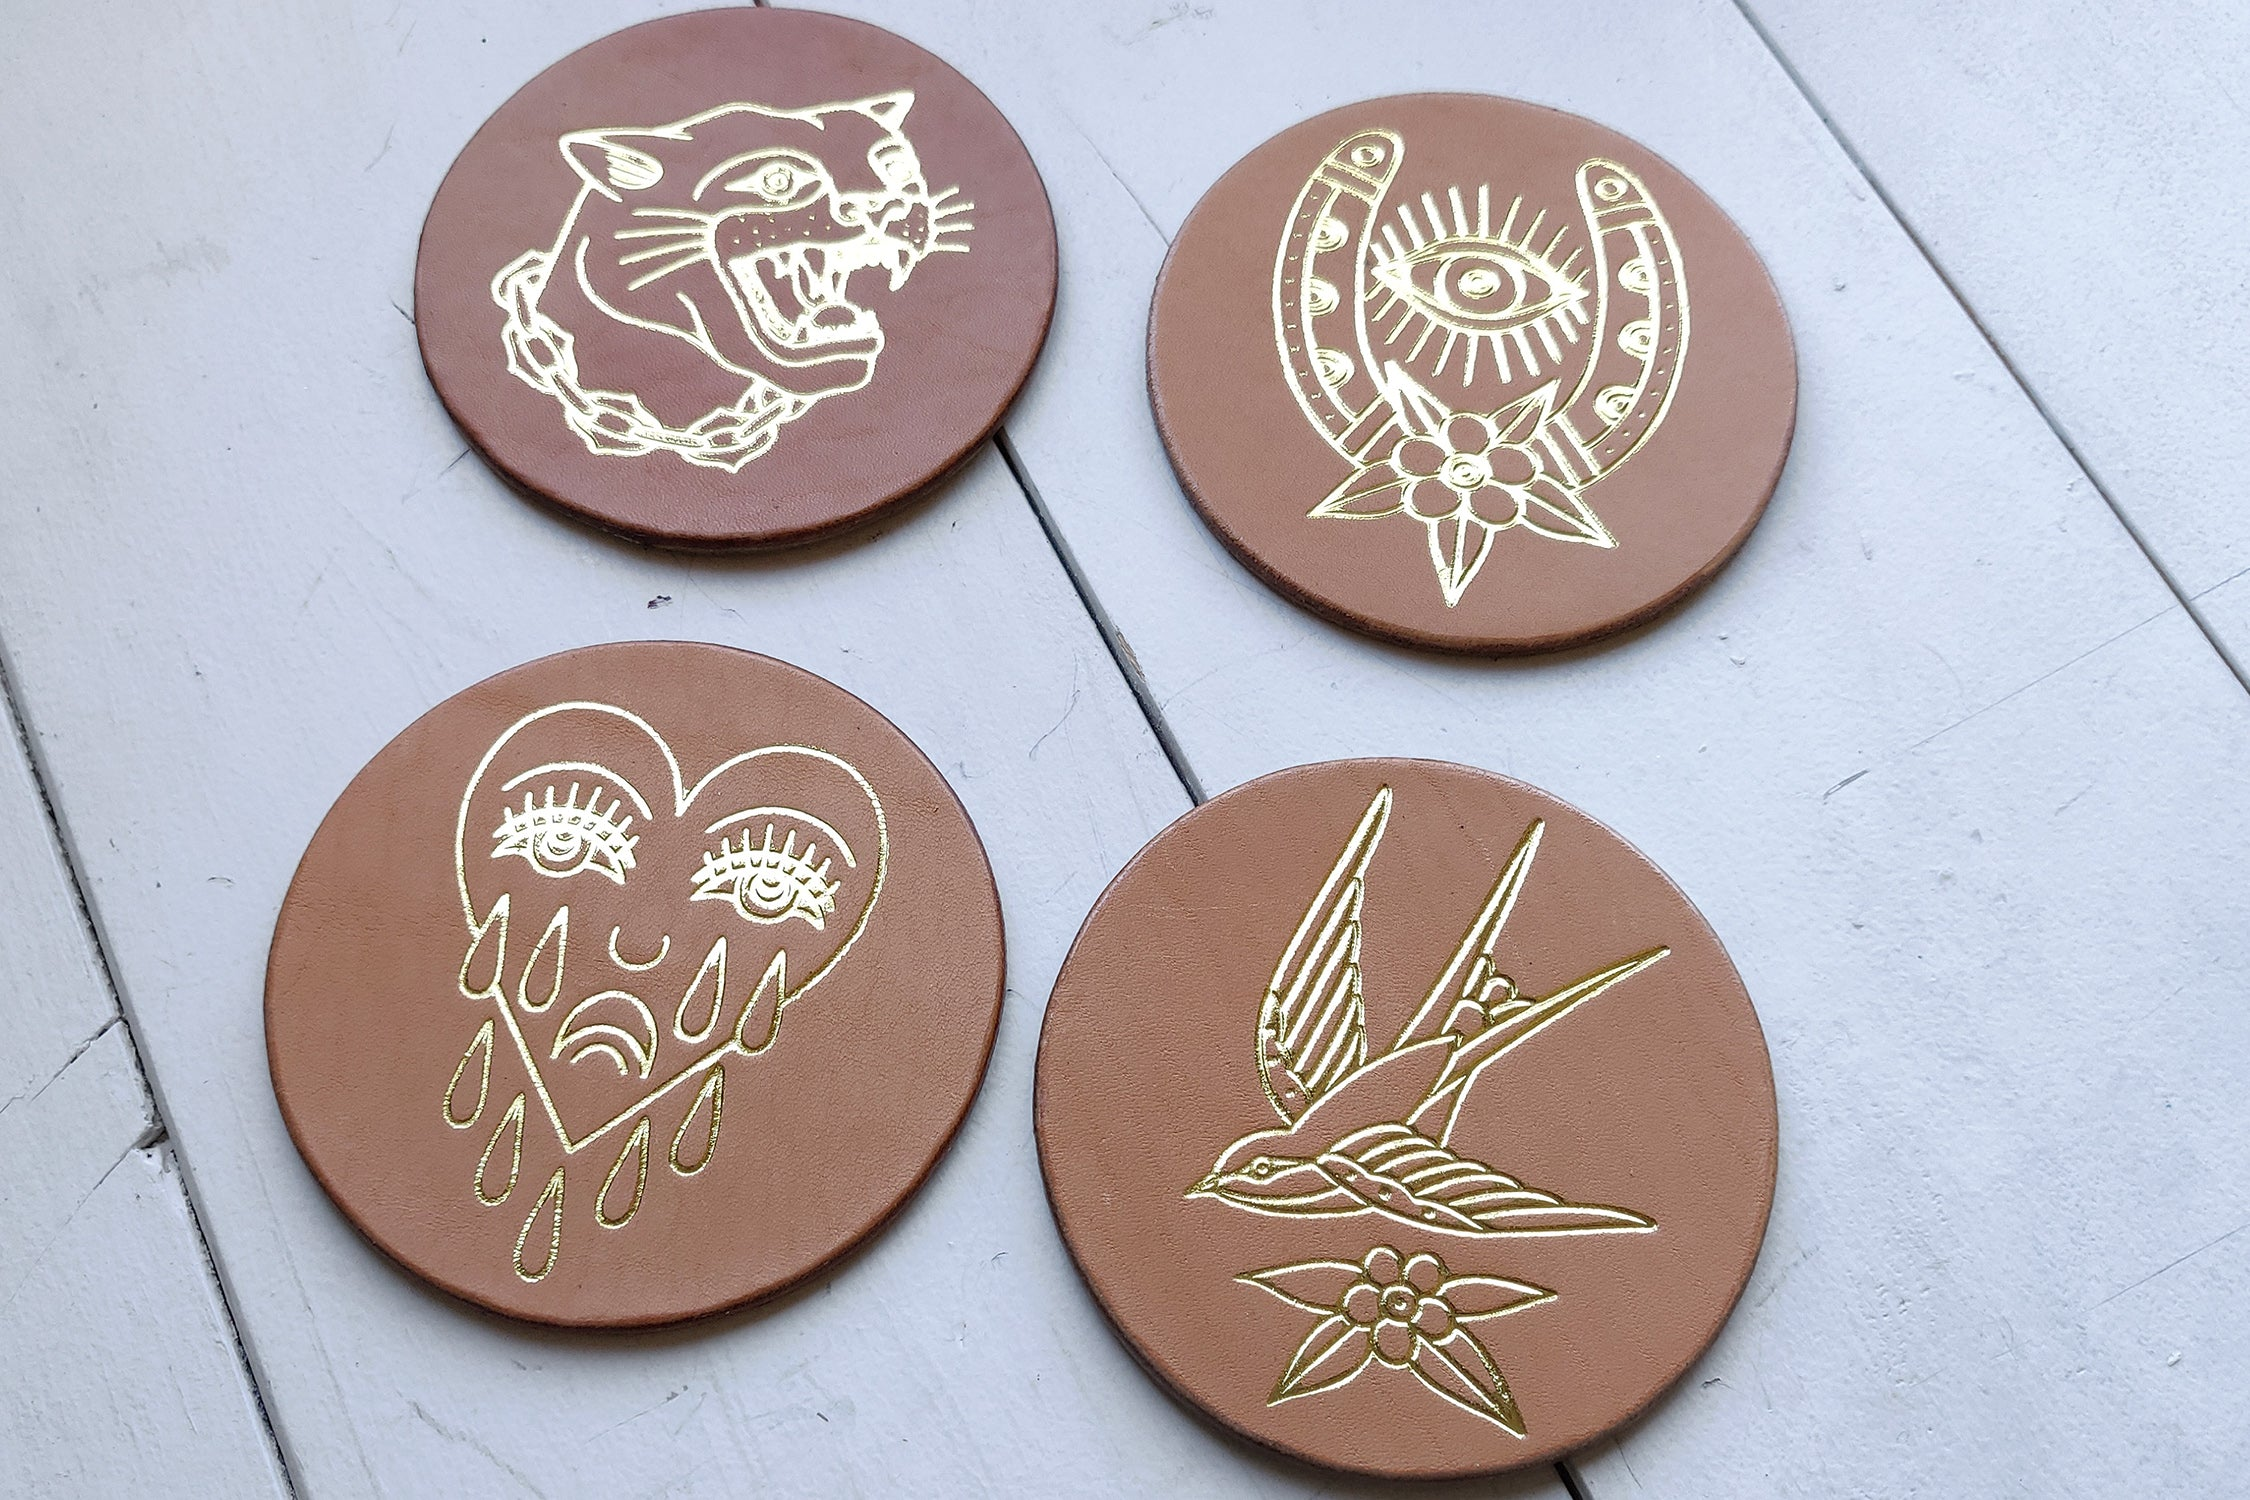 ALL-LEATHER COASTERS - 4 PACK (11-30-19 RESTOCK)